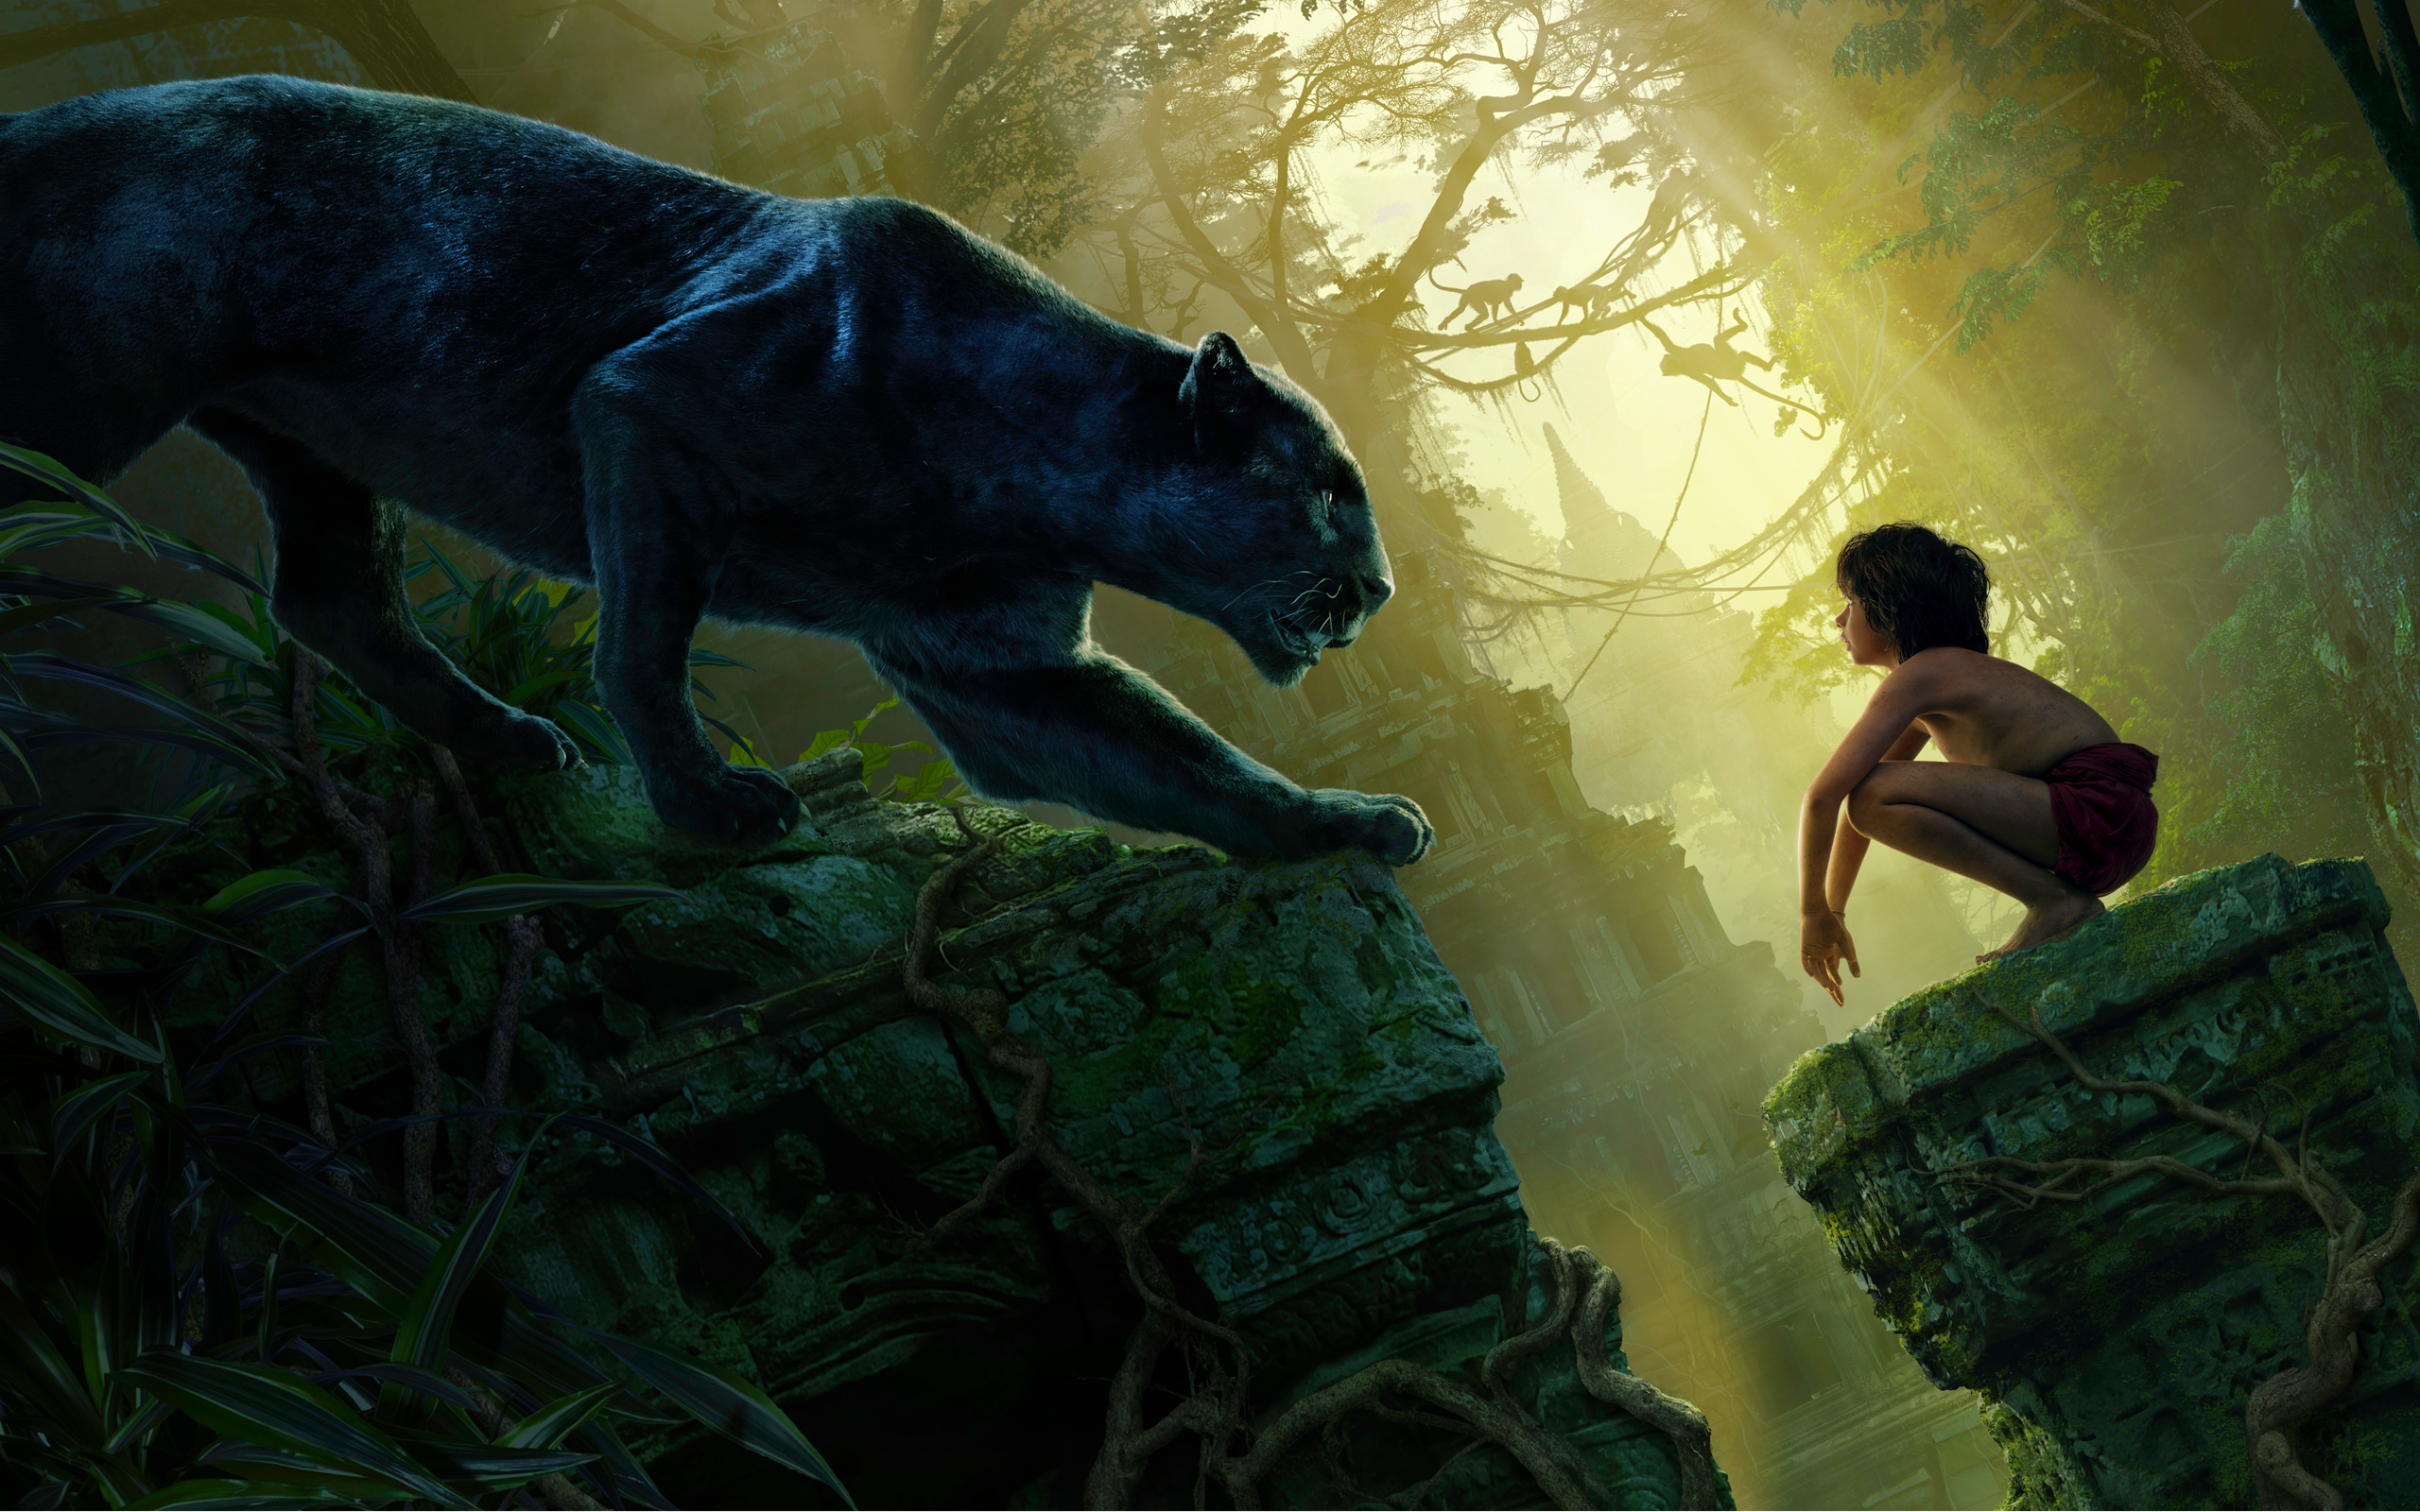 Jungle Book Images Mowgli Bagheera Black Panther The Jungle Book